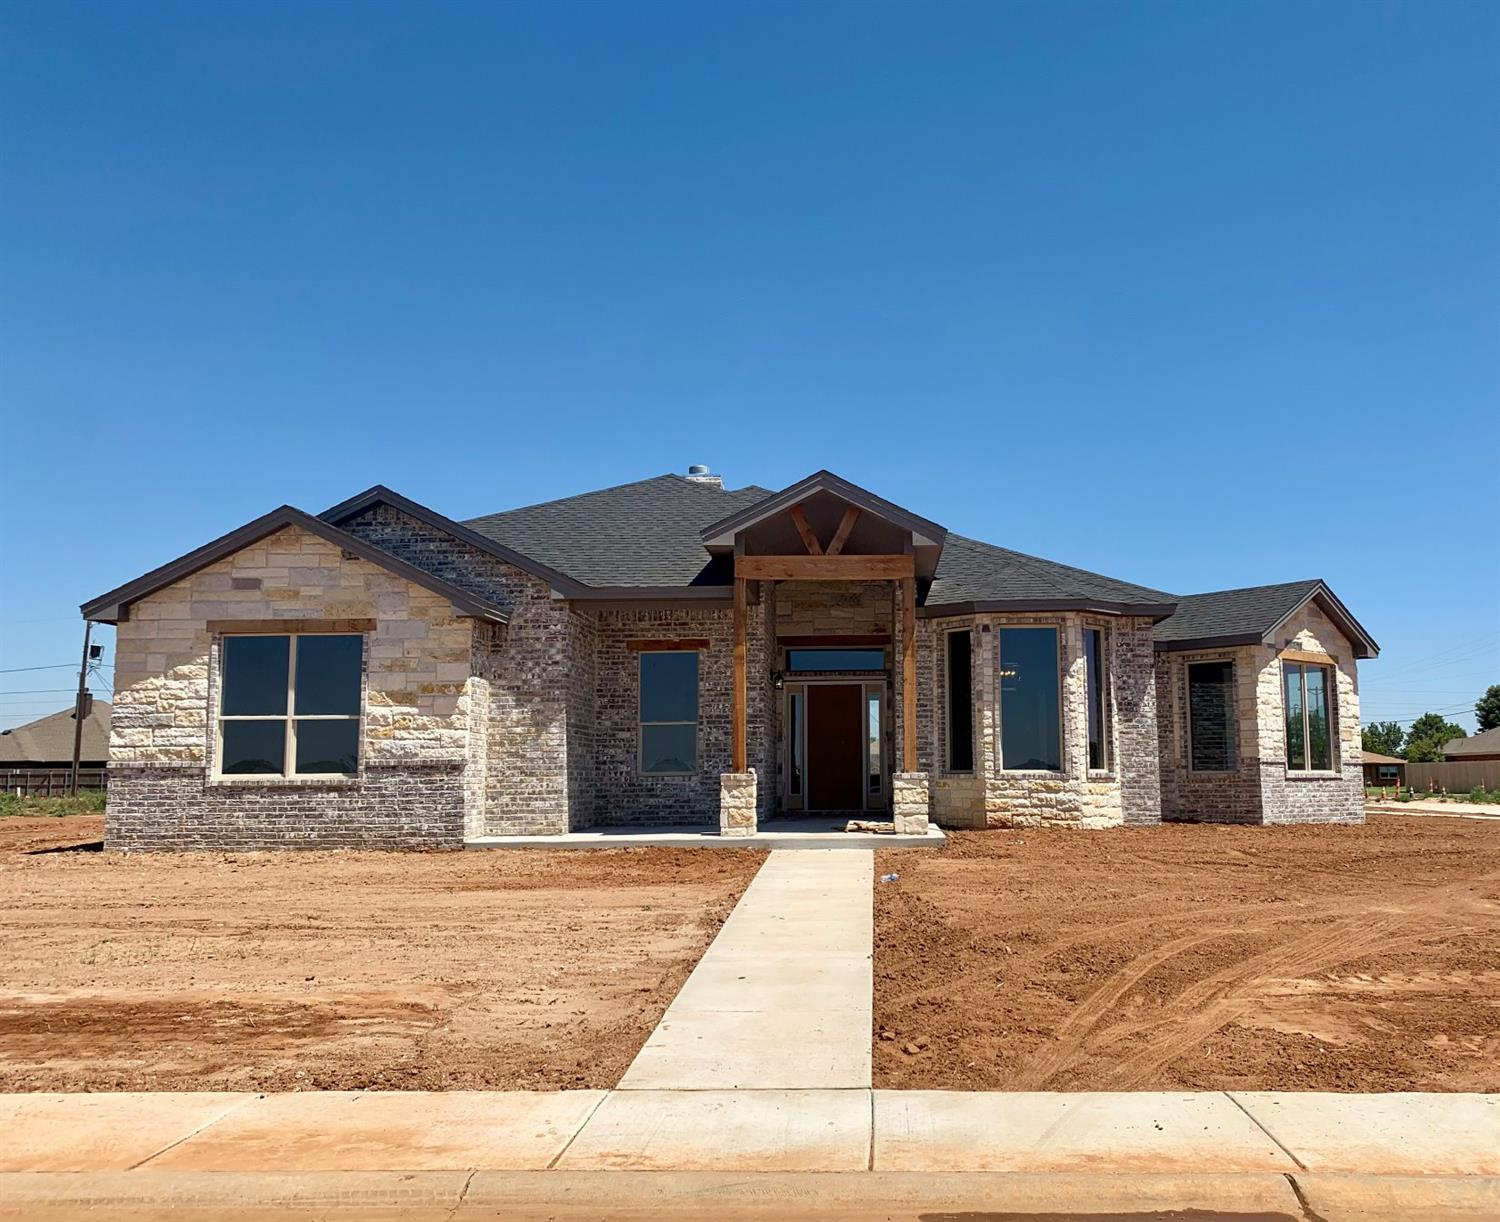 Welcome to the Newest 1/2 Ac Lots In Frenship ISD. Edge Homes is Bringing Wolfforth Large Homes, Huge Lot Size~At an Exceptional Value. Custom Designs~ Huge Bedrooms with Plenty of Closet Space~Breakfast Area PLUS Dining~HURRY and Design this Home the Way you Want!  Plenty of Time to Choose your Own Selections.